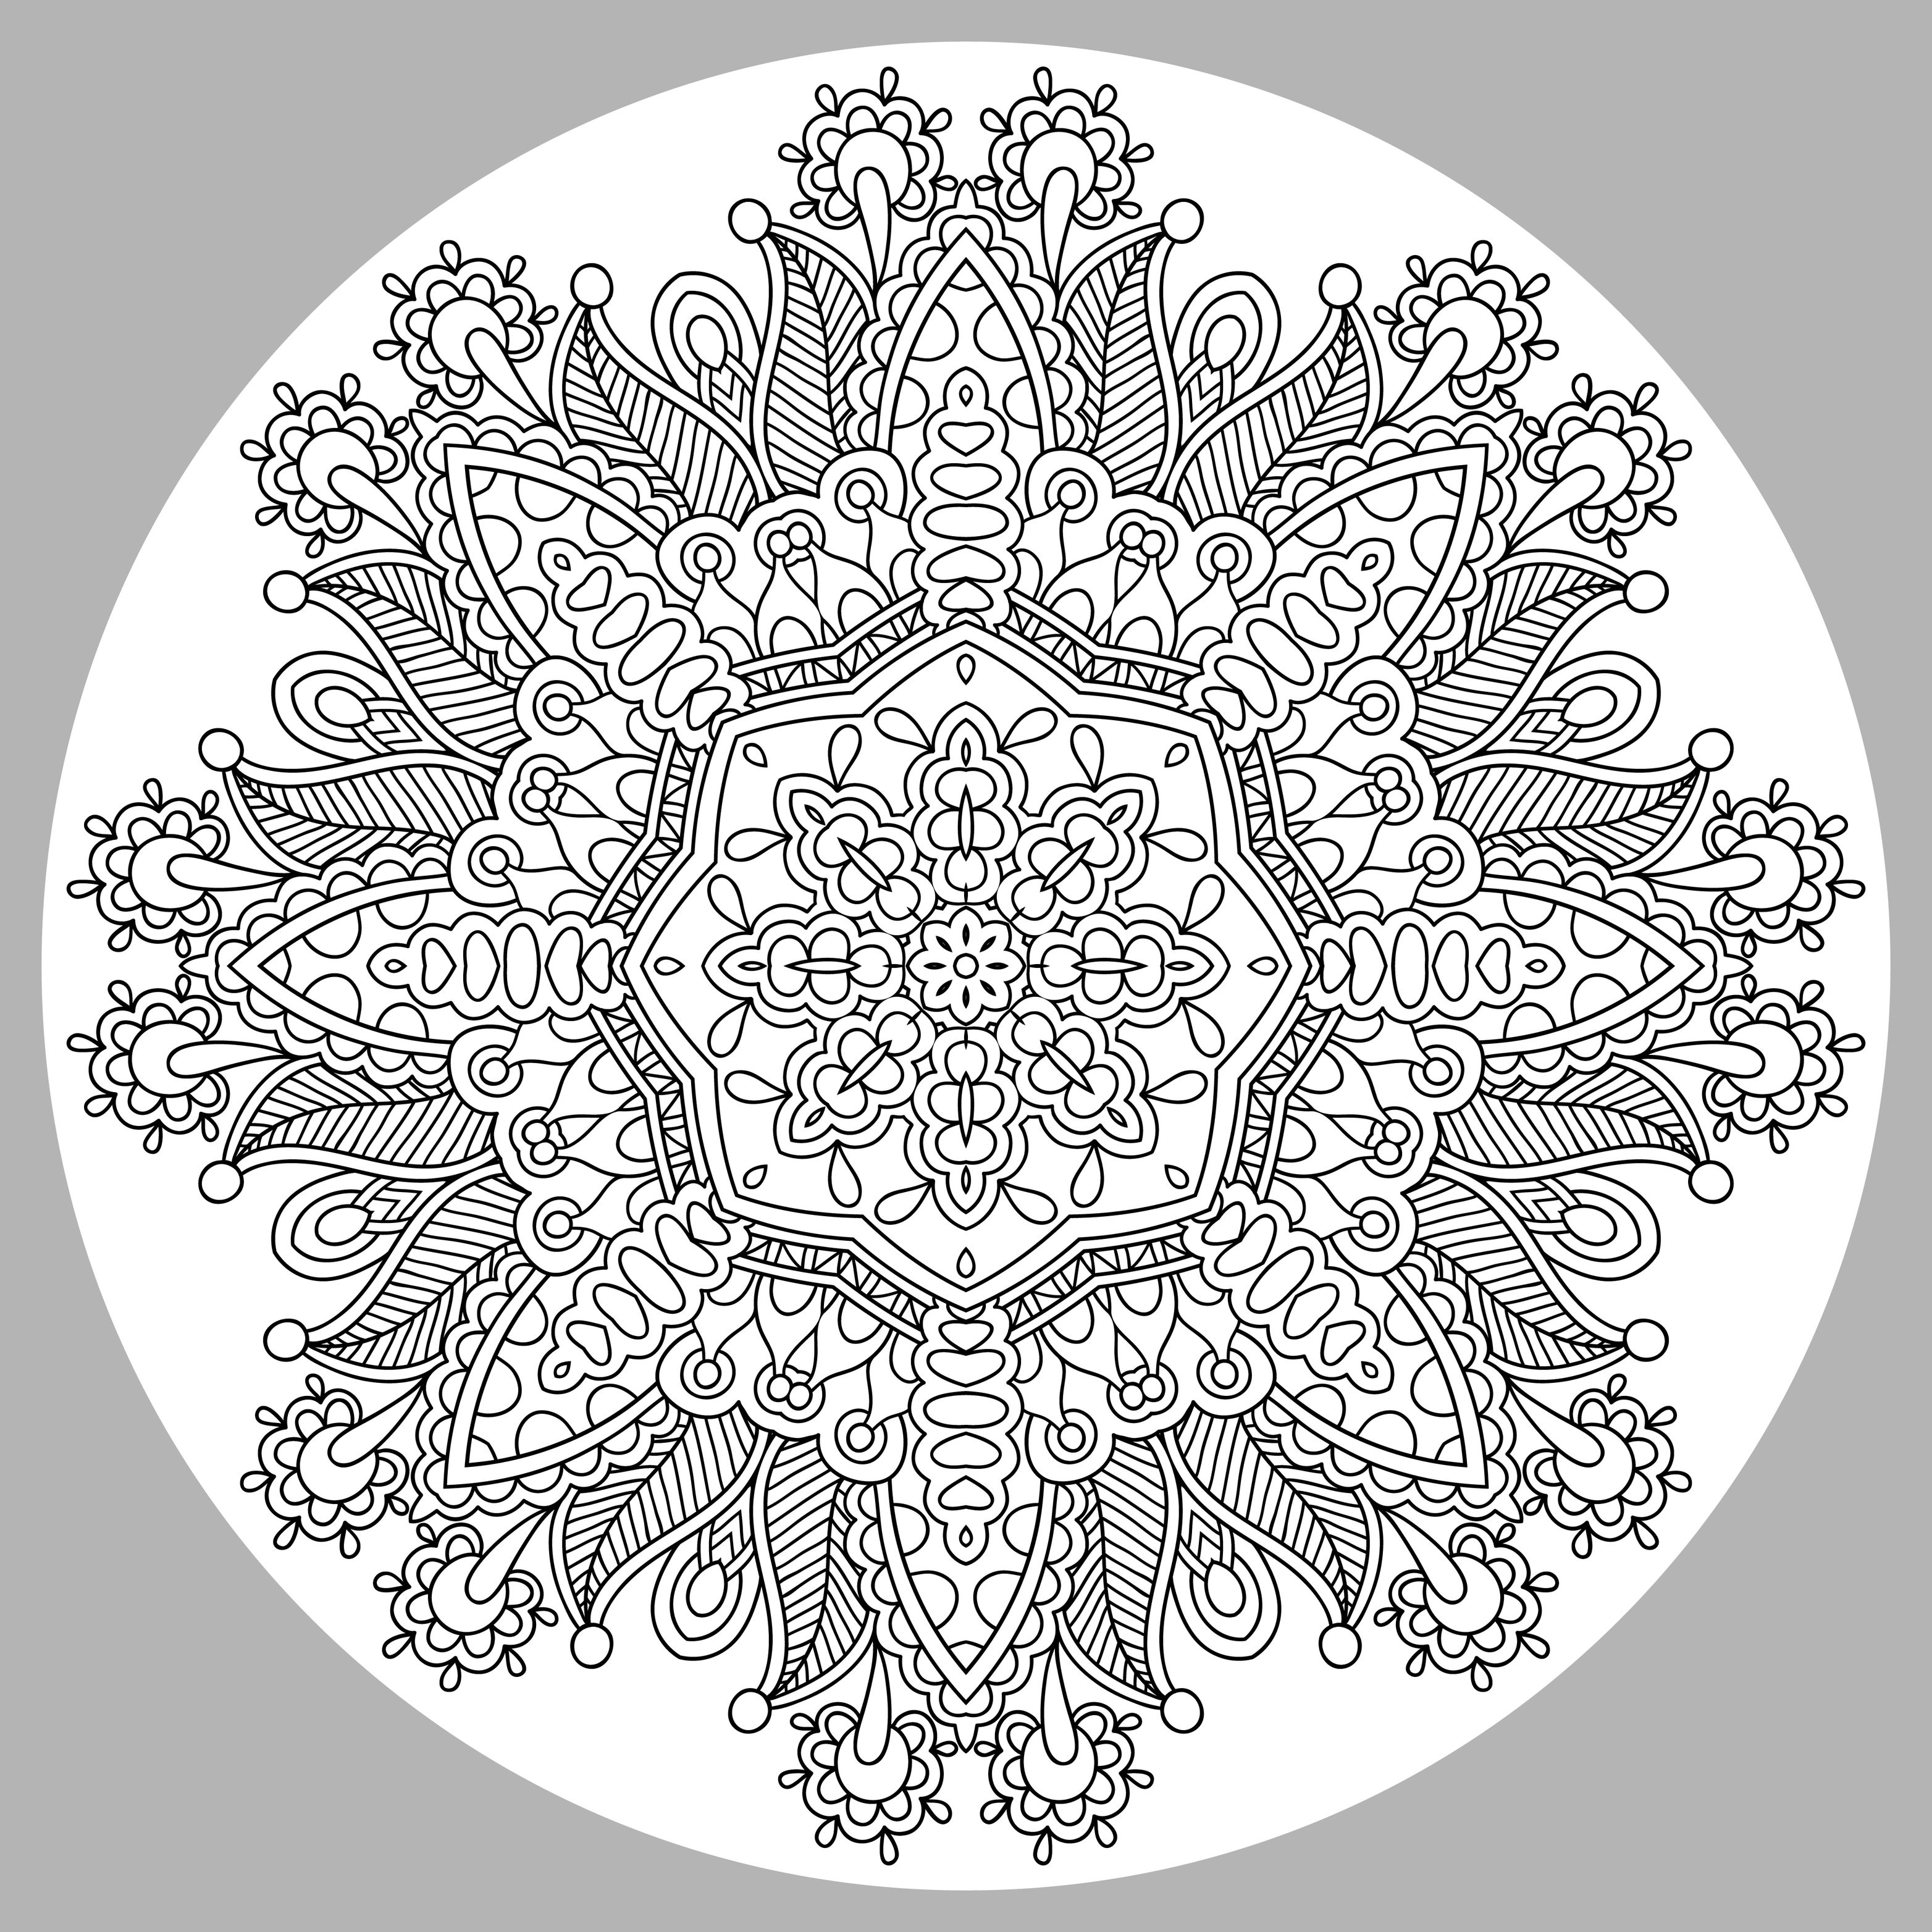 Harmonious Mandala coloring page by Karakotsya. This Mandala coloring page is really very difficult ! Its originality is that its background is grey. Courage, you can complete it. We recommend colored pencils, fine tip pens, or gel pens. You must clear your mind and allow yourself to forget all your worries, to reach the soothing that comes from coloring.